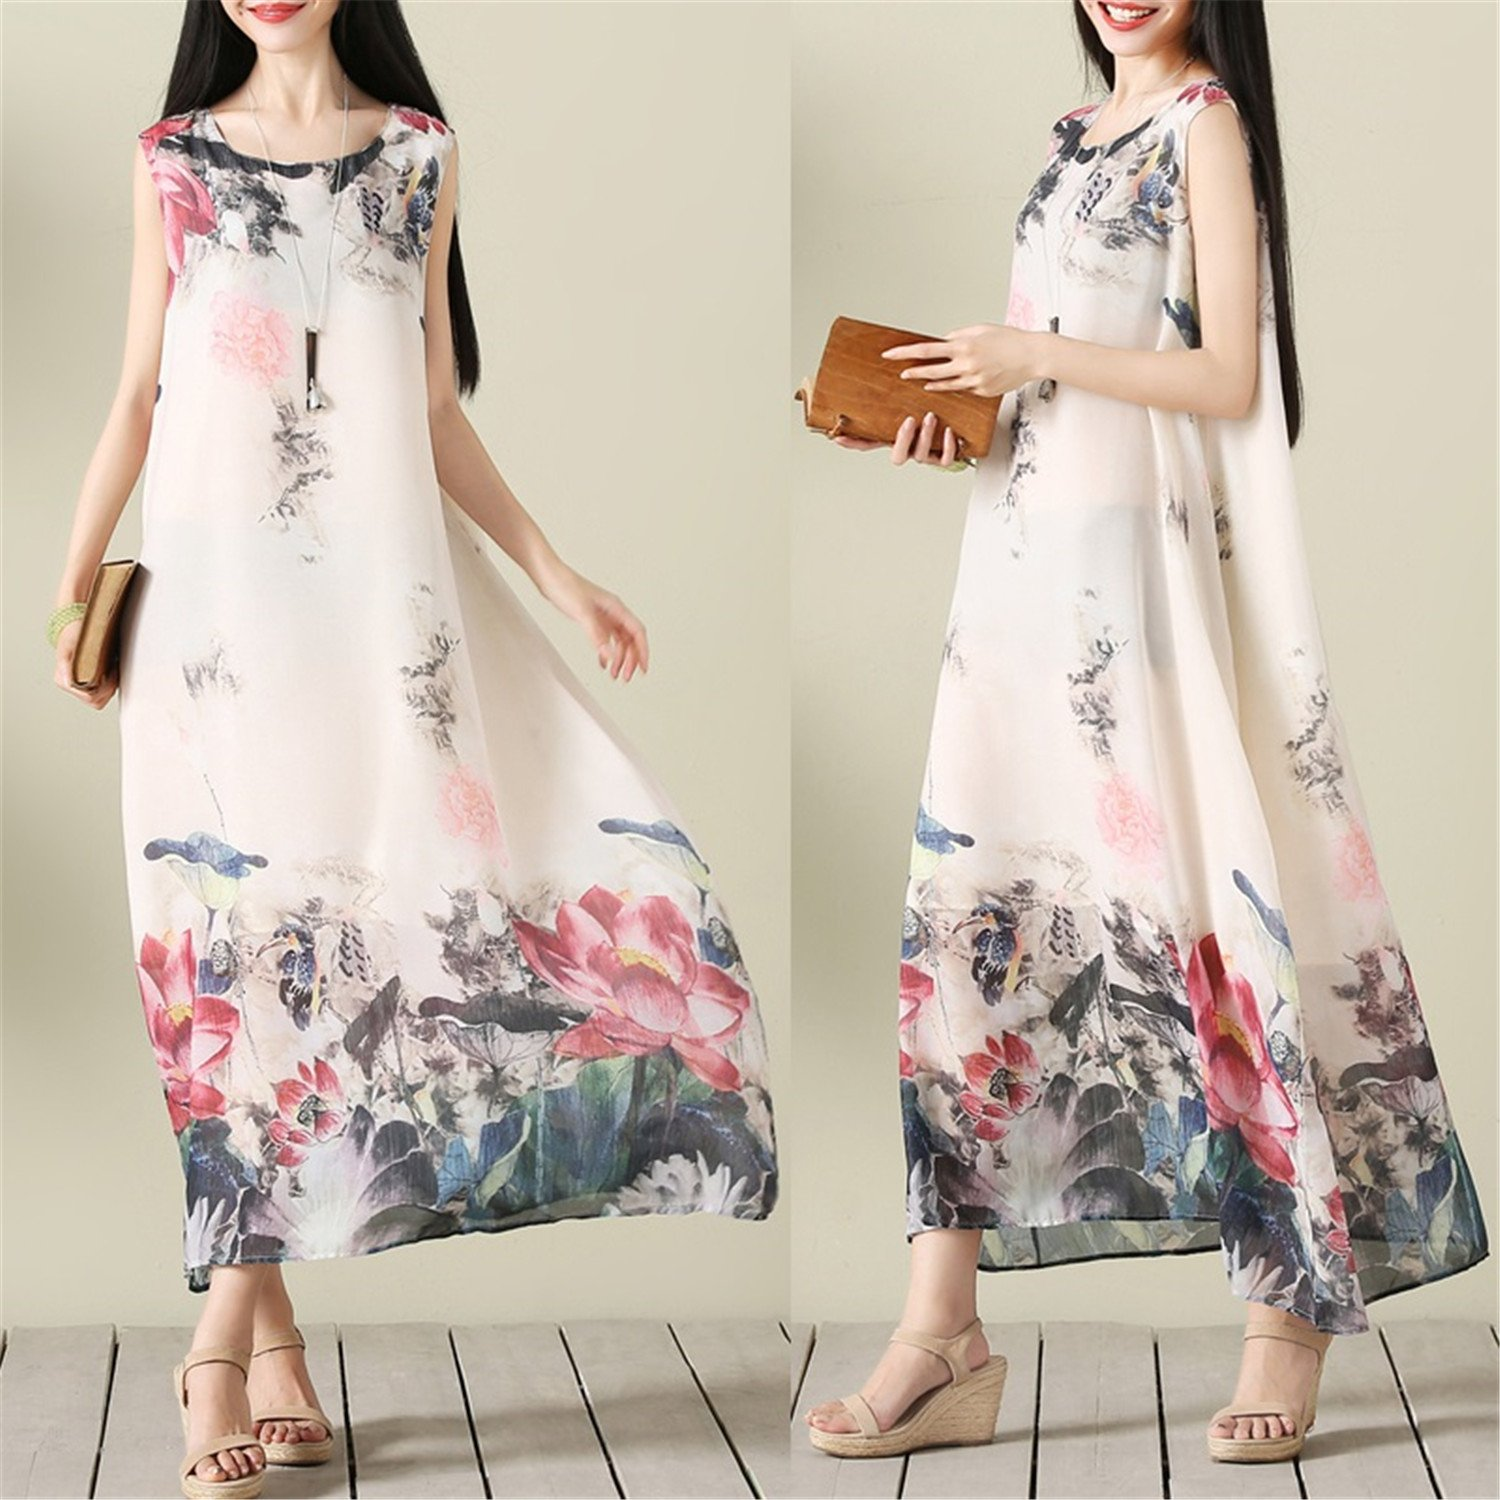 Chiffoned New Vintage Print Fashion Chiffon Loose Long Women Casual Dresses Summer Dress 2018 Dresses at Amazon Womens Clothing store: